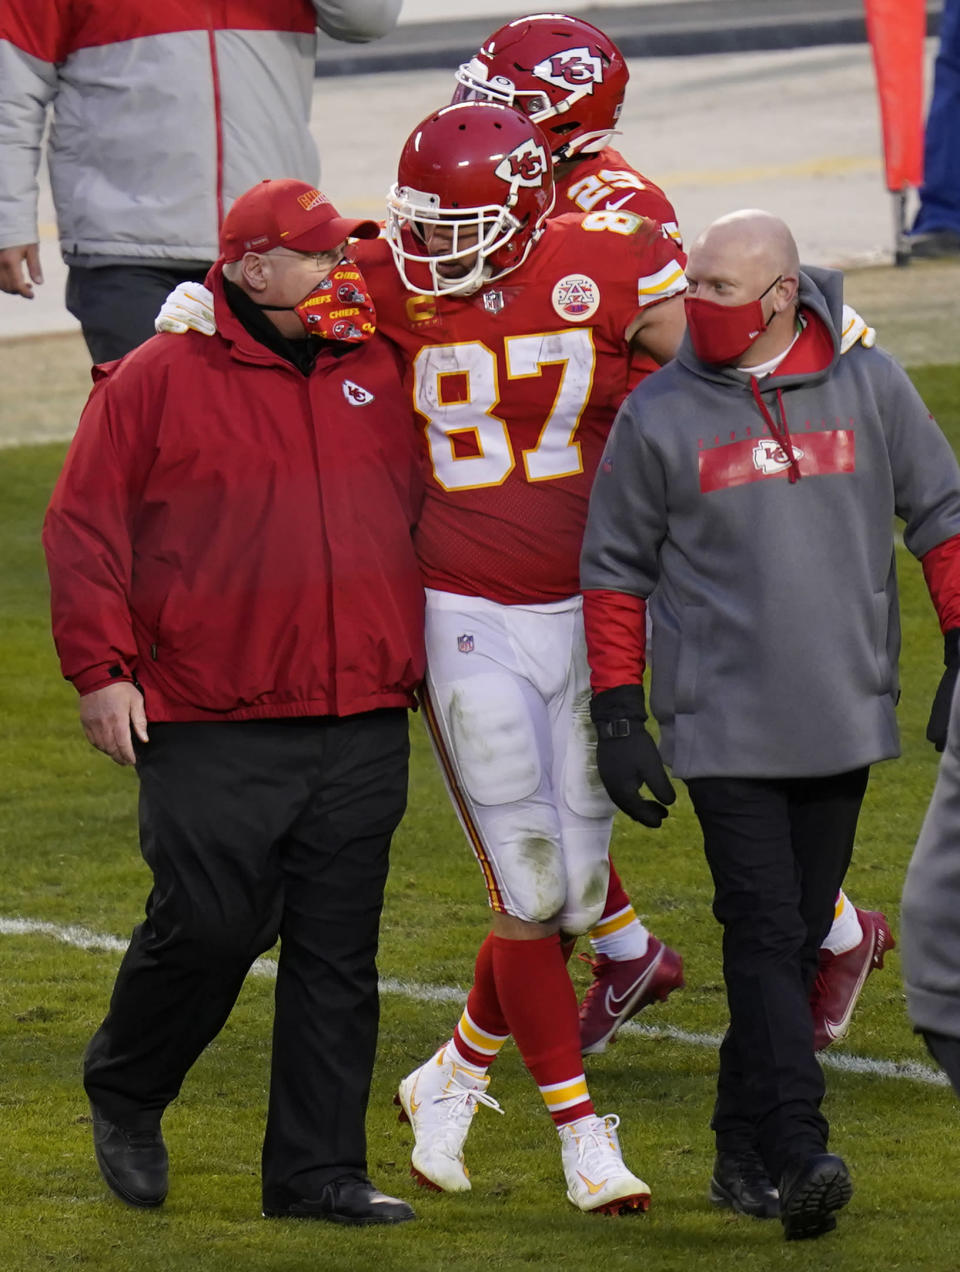 FILE - In this Jan. 17, 2021, file photo, Kansas City Chiefs tight end Travis Kelce (87) walks off the field with coach Andy Reid after an NFL divisional round football game against the Cleveland Browns in Kansas City, Mo. Both Reid and Bruce Arians are considered players coaches, though they do it in different ways. It's a quality thats helped them reach the Super Bowl. (AP Photo/Orlin Wagner, File)